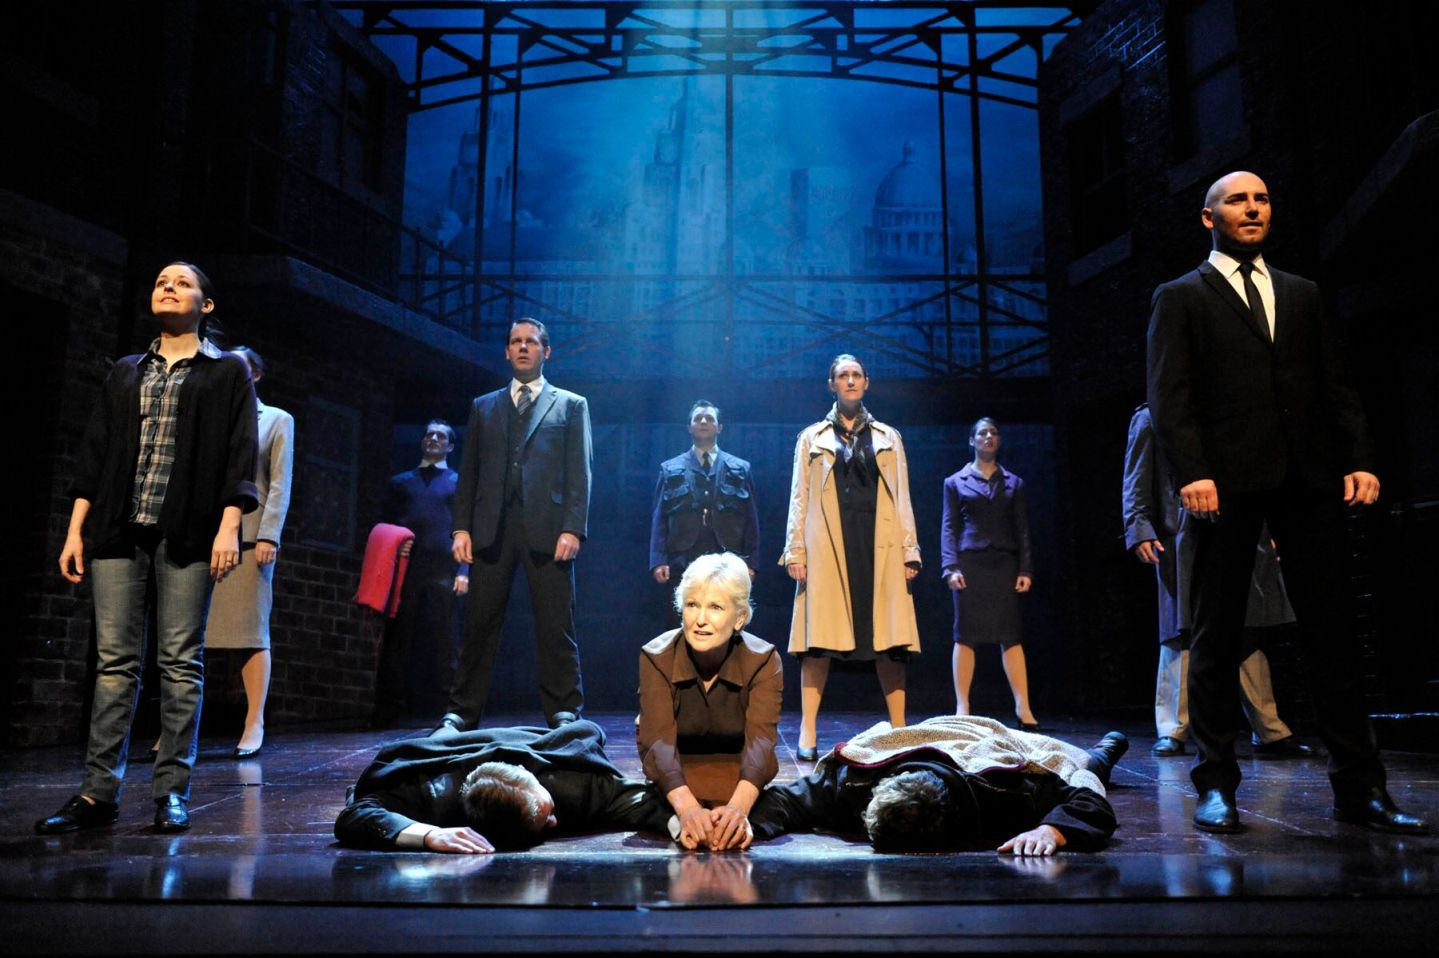 BB2 1 - Top 5 Musical Theatre Shows Of 2019